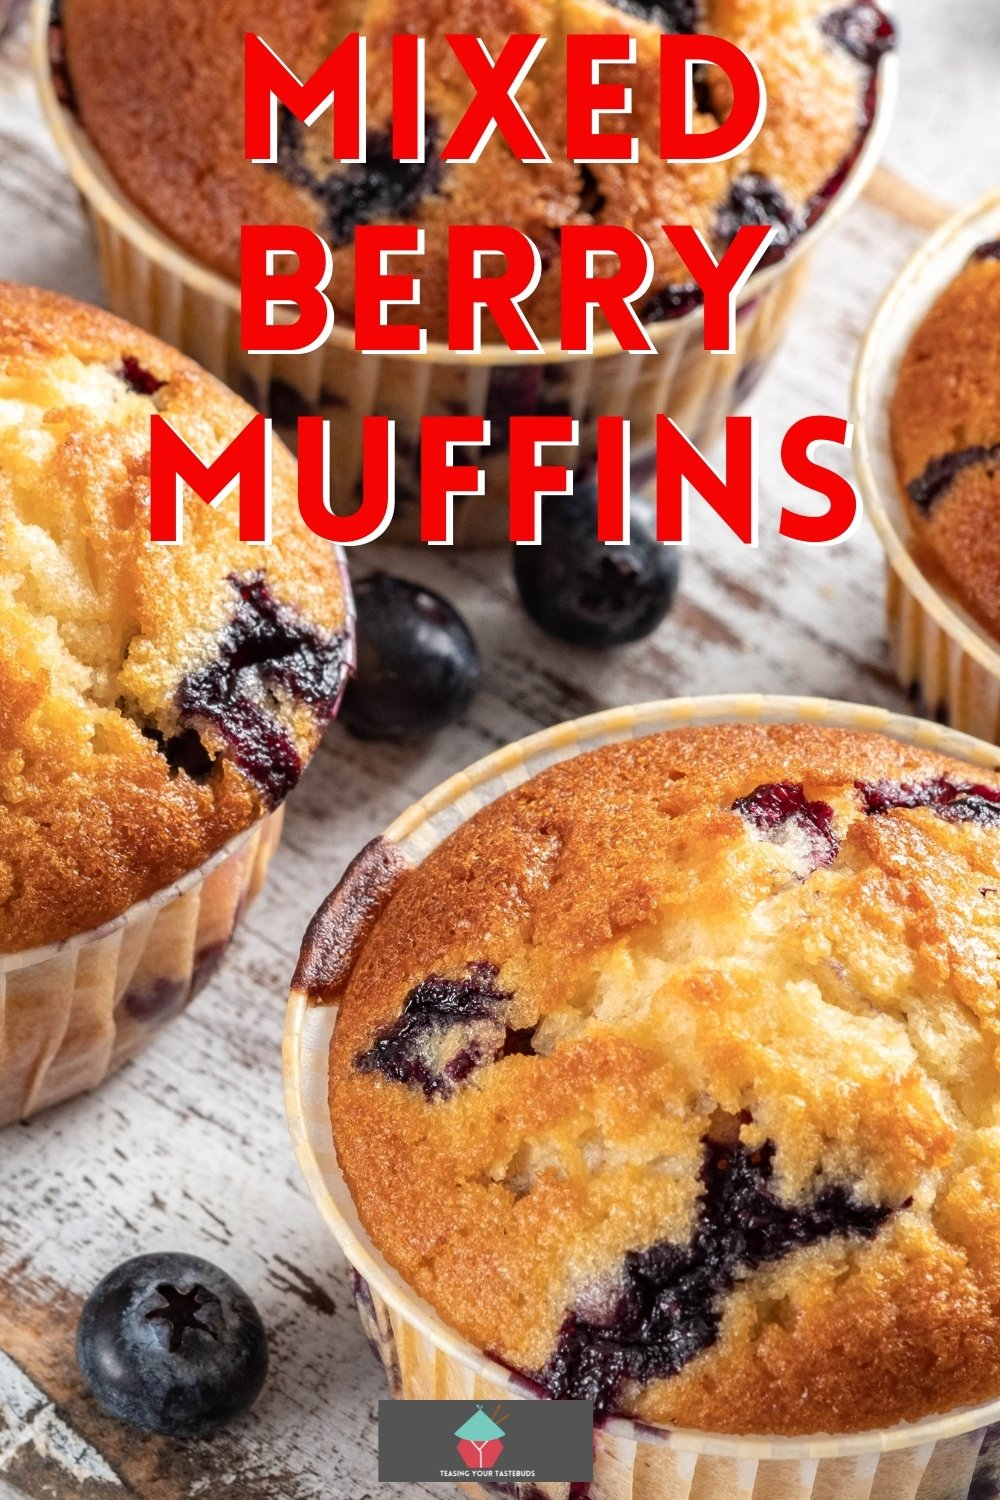 Mixed Berry Muffins. Easy recipe for mixed berry muffins, ideal for breakfast and quick to make. Tender and bursting with juicy berries. Use fresh or frozen berries for these fruit muffins